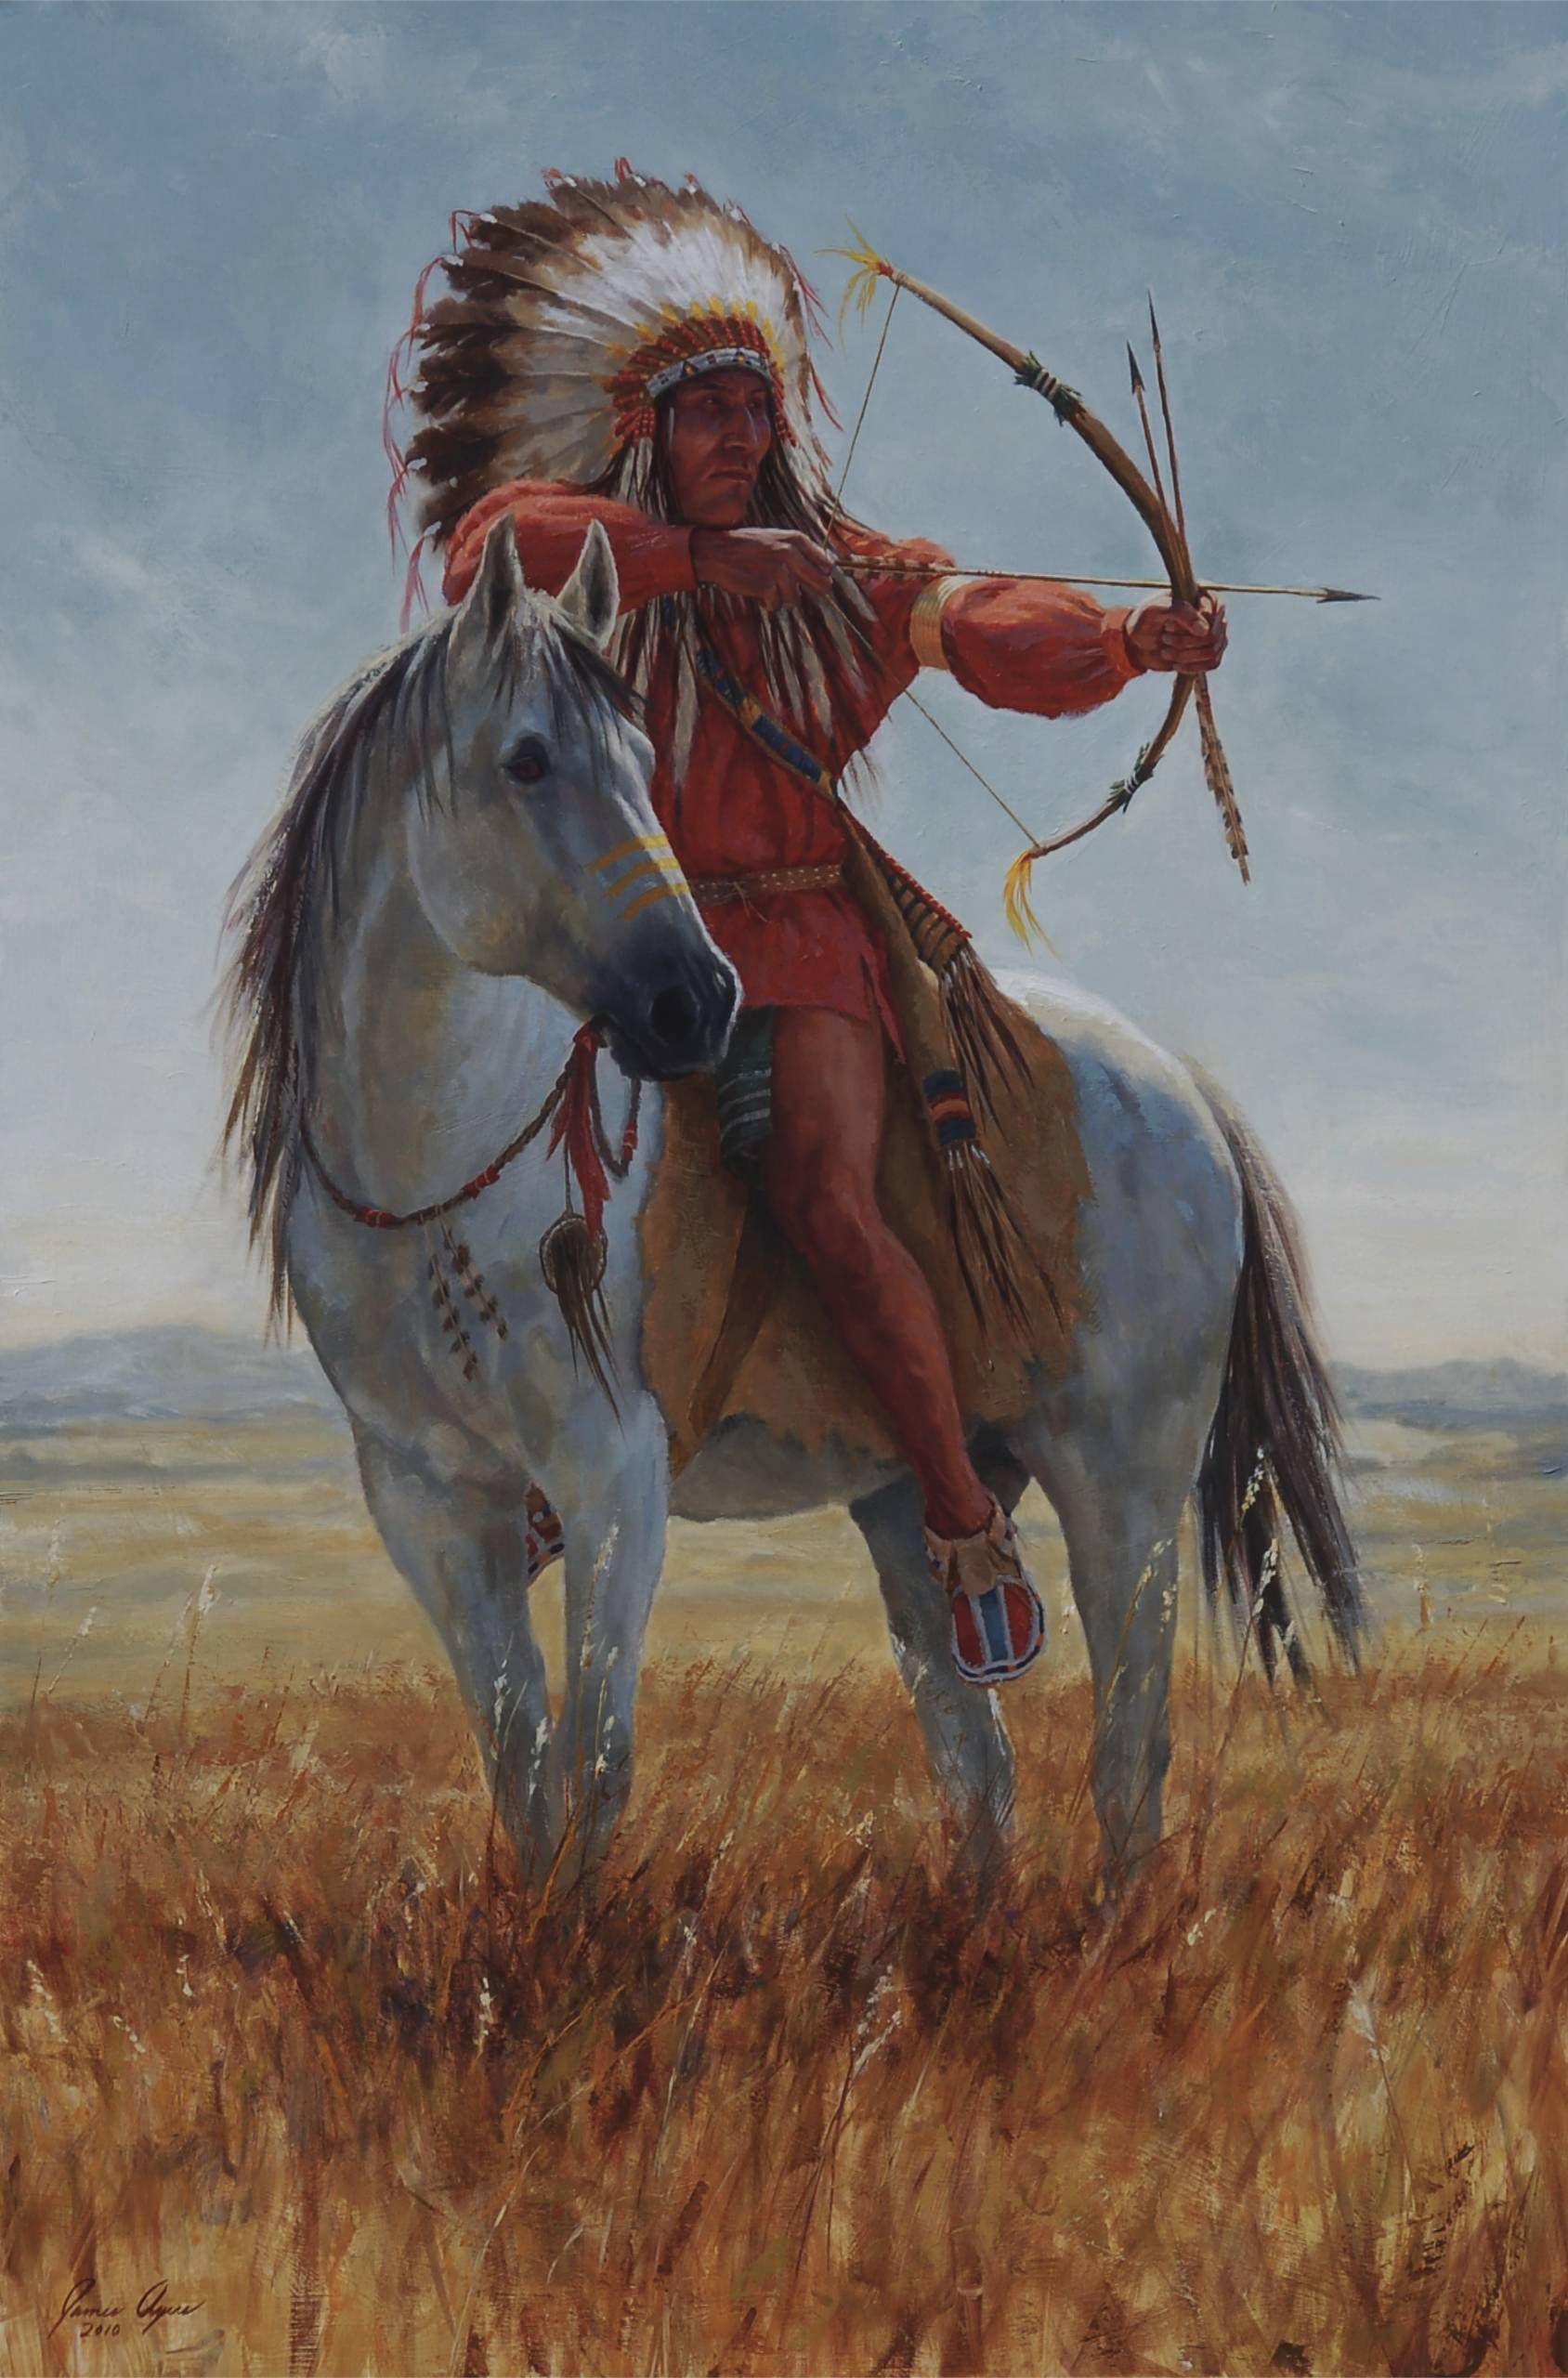 Western American Indian Warrior Paintings | Available Paintings Taking Aim – James Ayers Studios                                                                                                                                                                                 Más